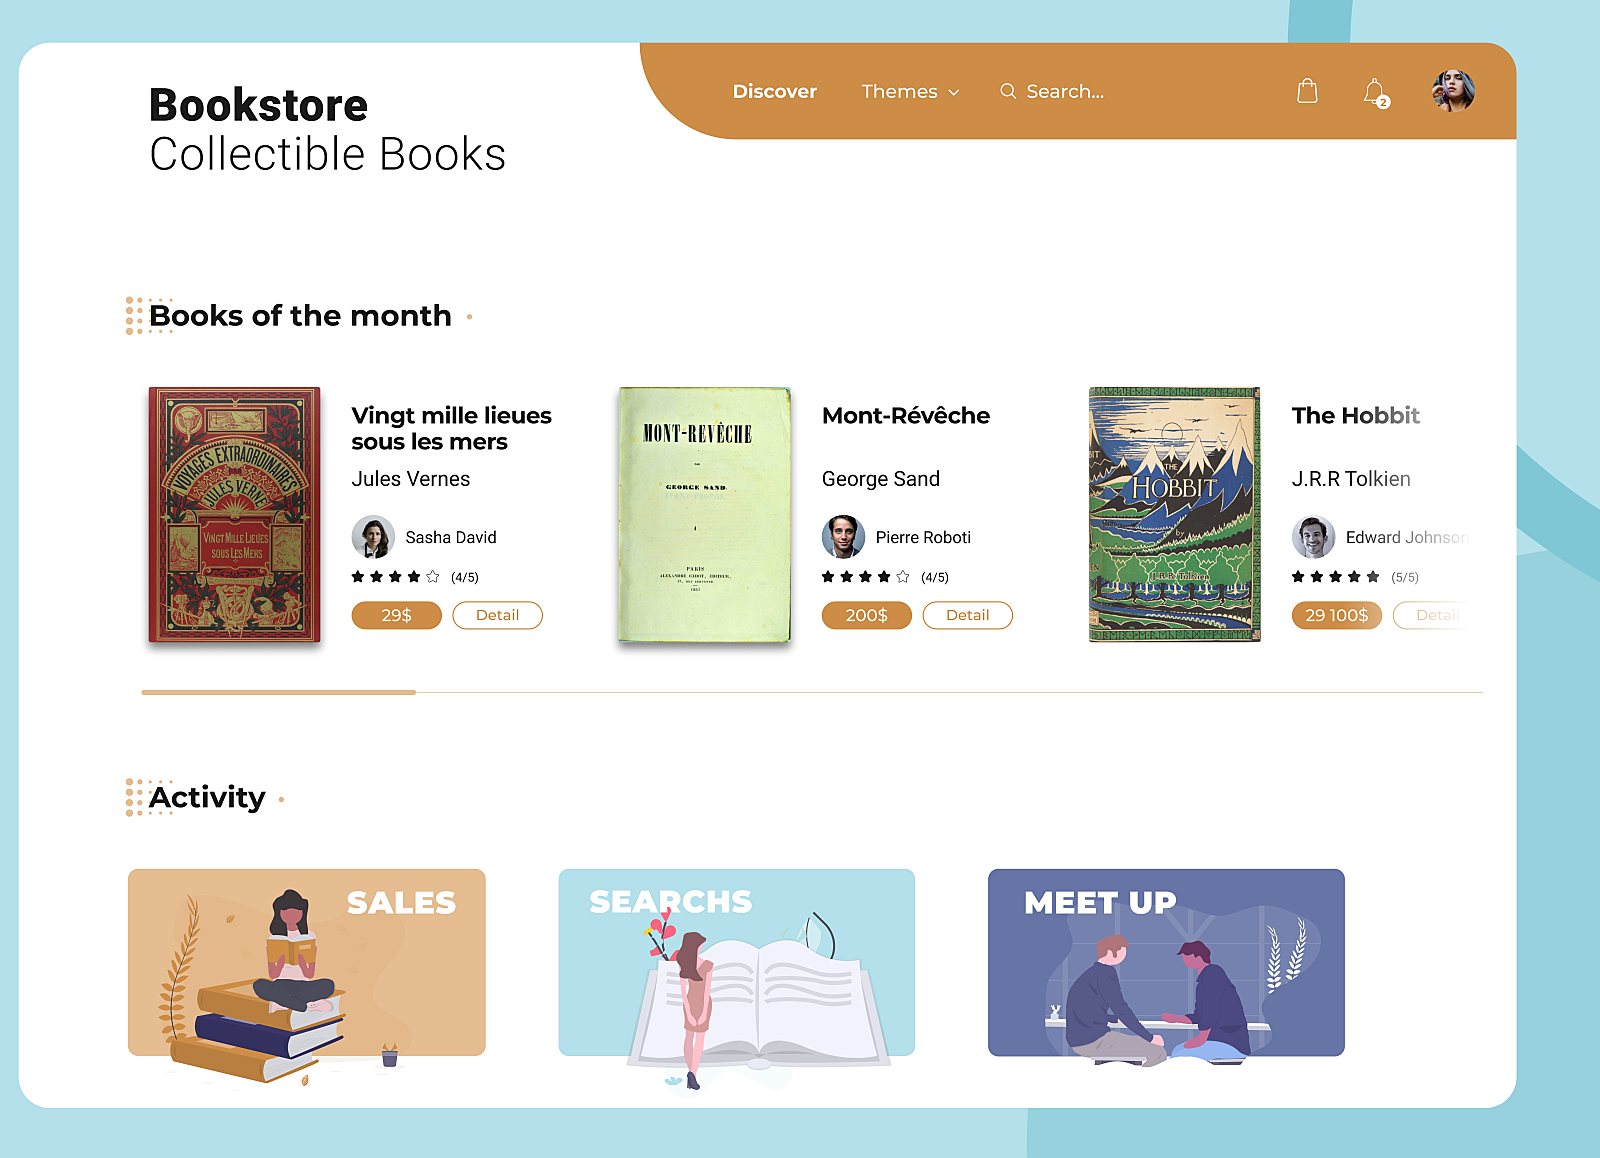 2 Bookstore web design by Alison Danis on Dribbble